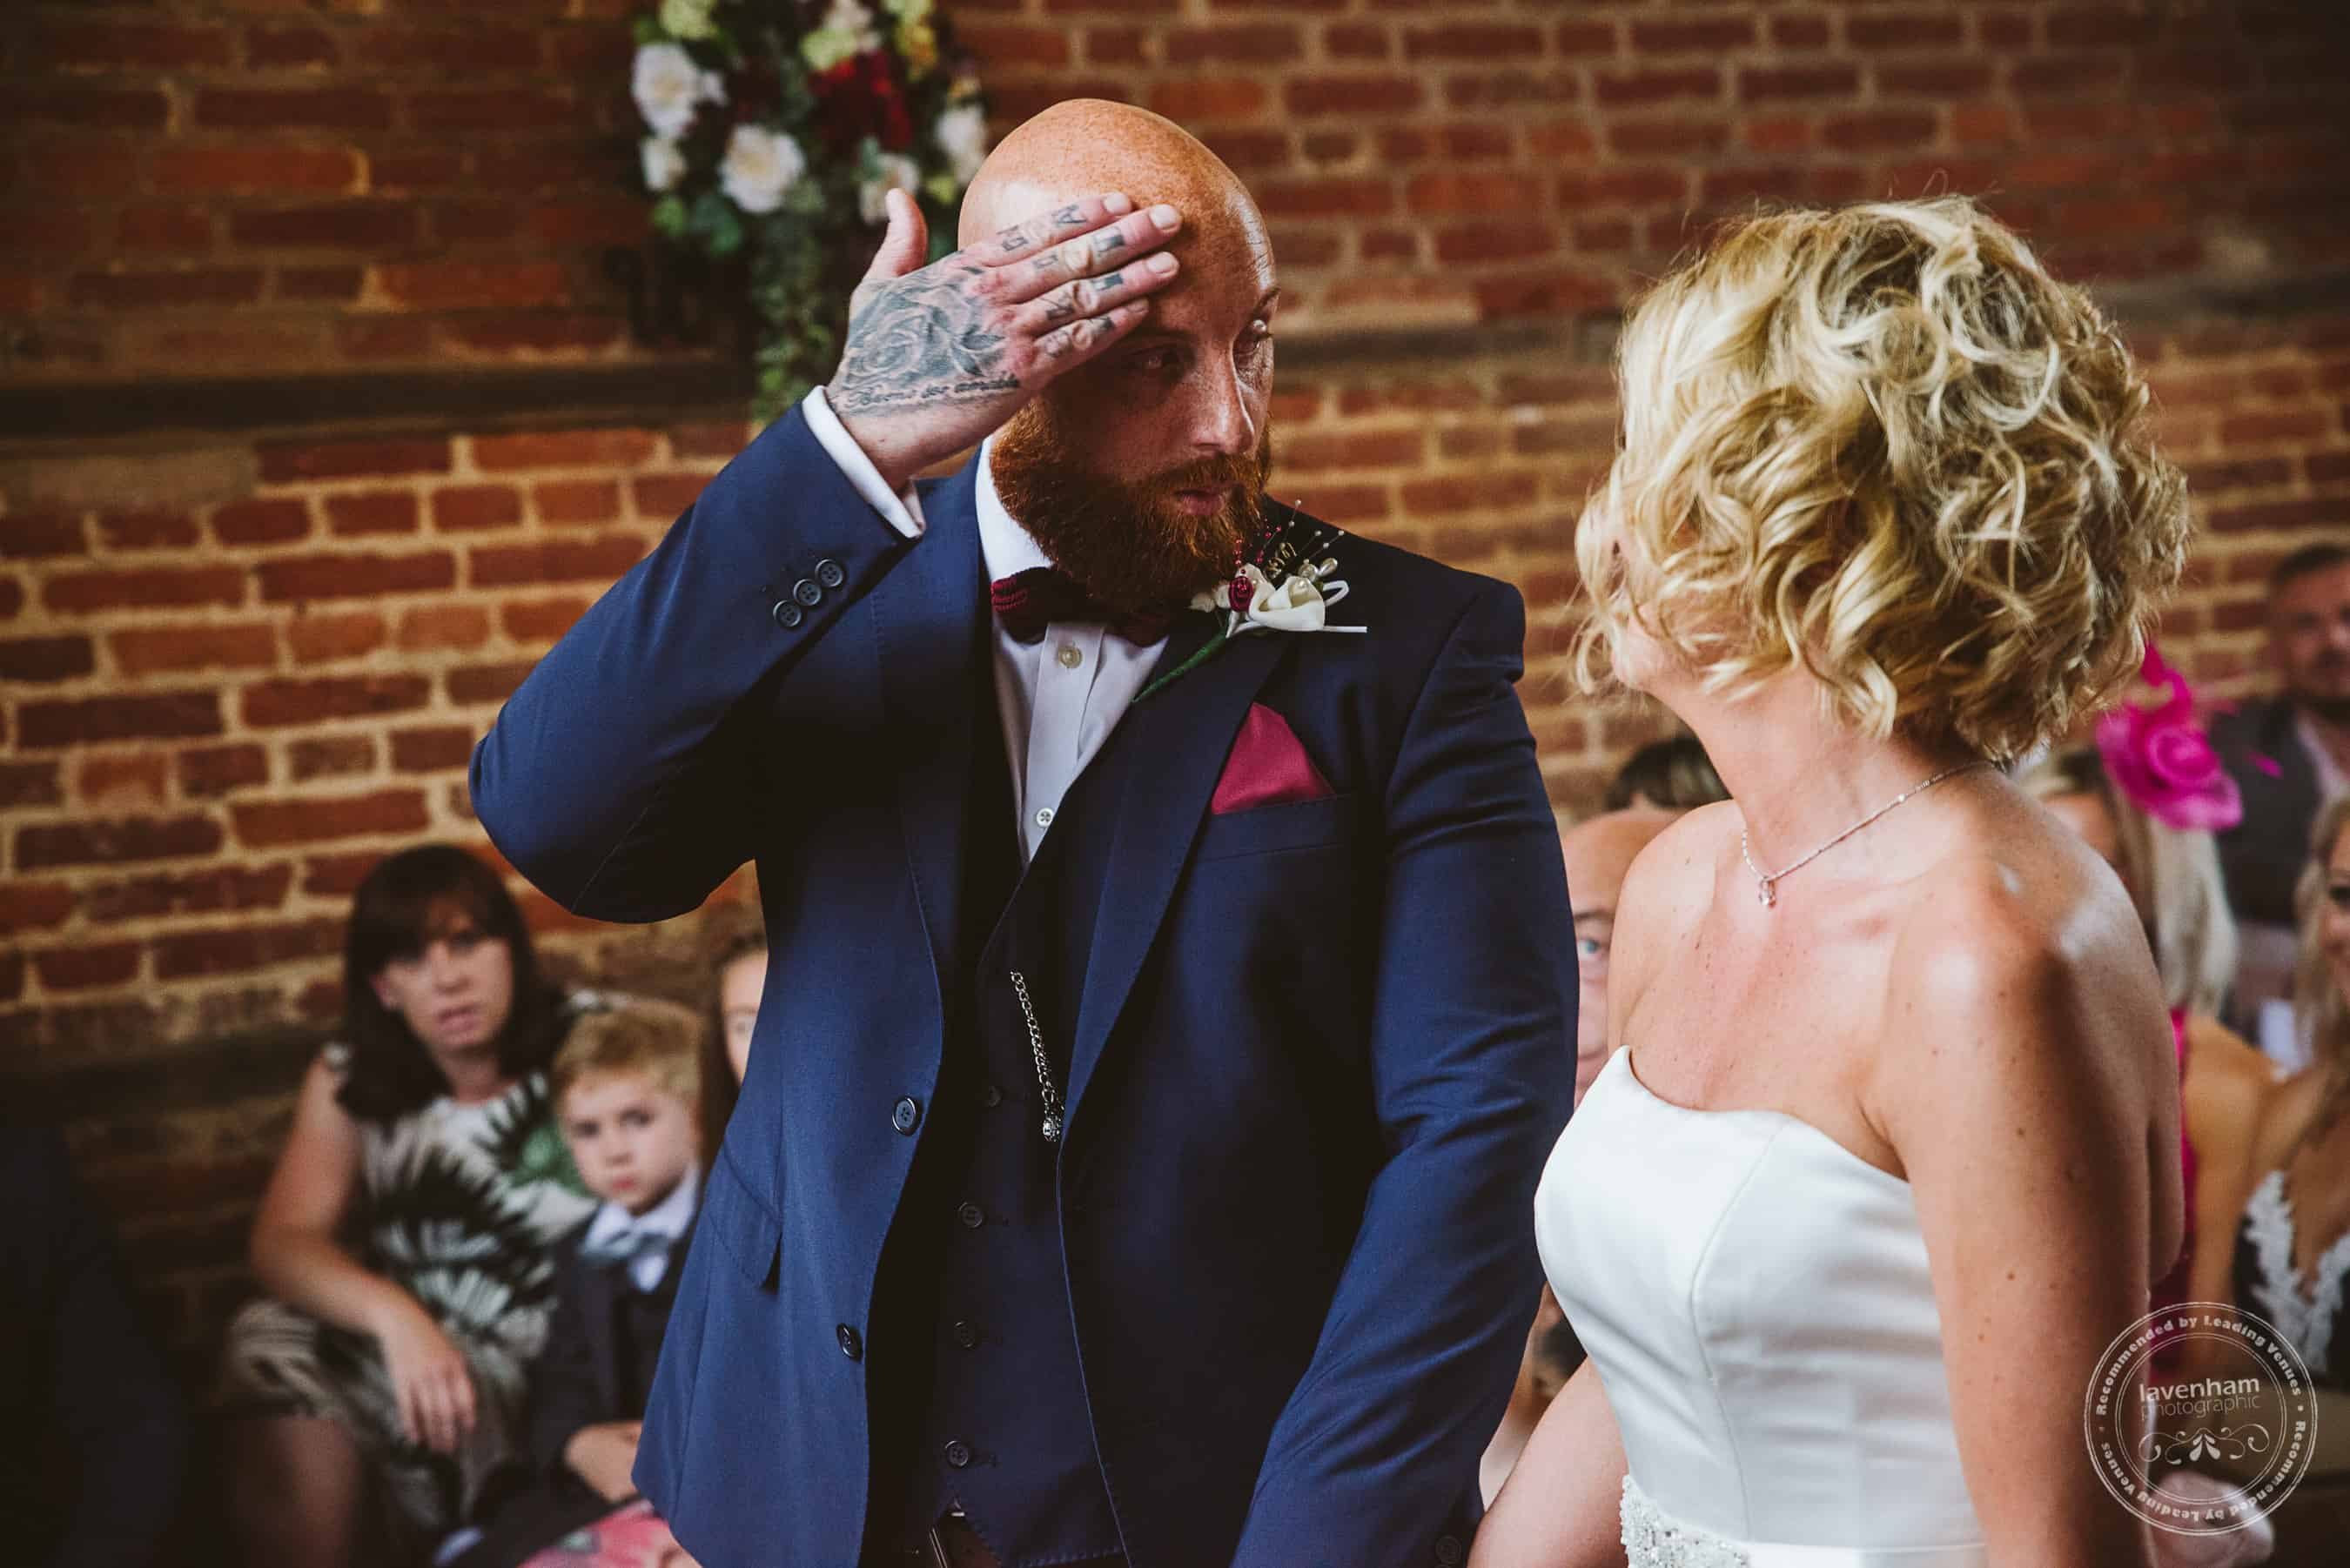 290518 Leez Priory Wedding Photography Lavenham Photographic 065